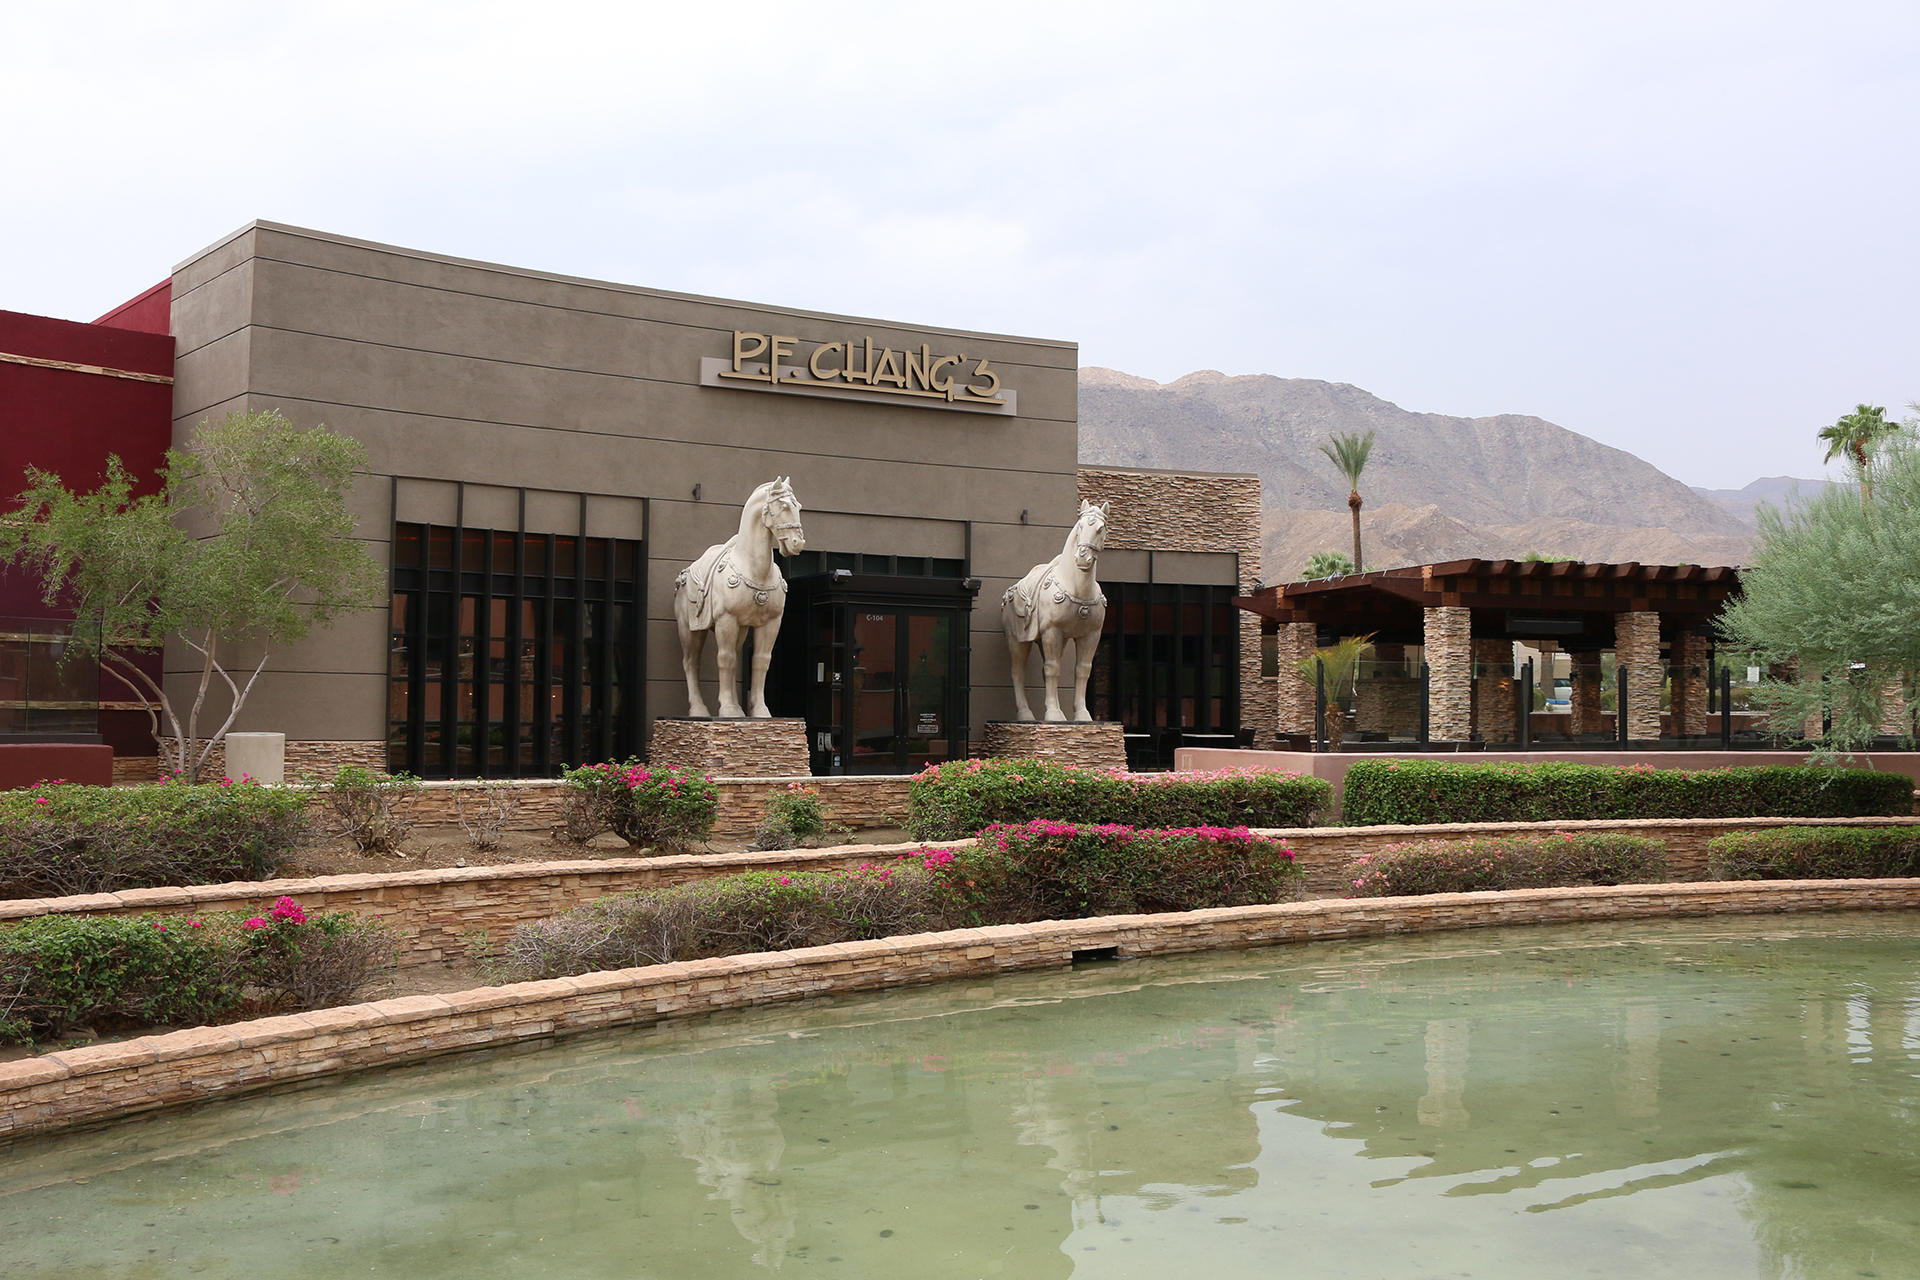 P F Chang Rancho Mirage Hours Christmas 2020 P.F. Chang's Delivery, Takeout and Dine In | 71800 Hwy 111 Rancho